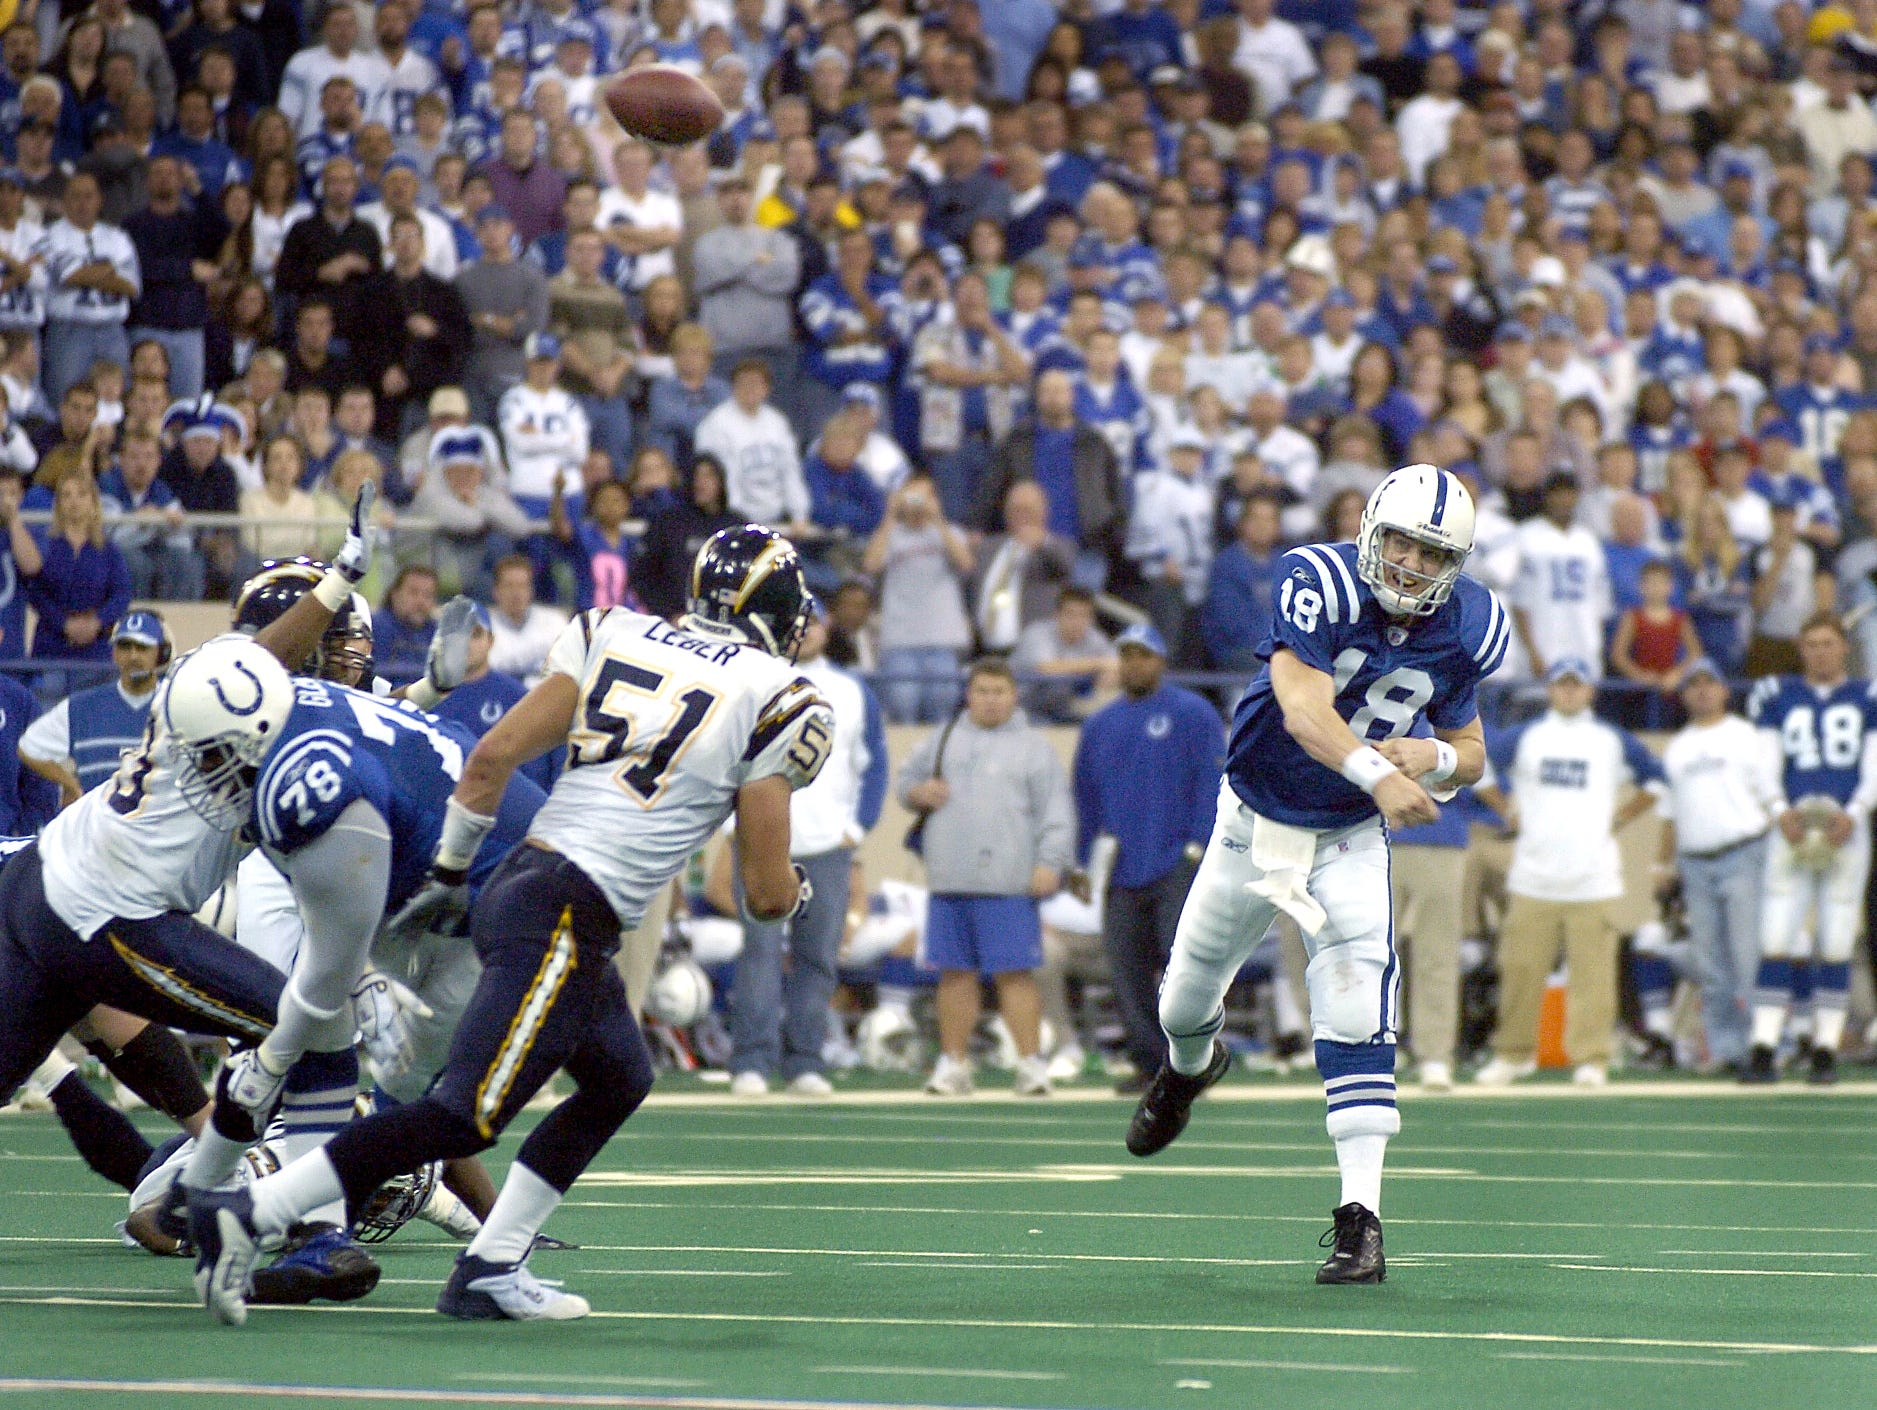 Indianapolis Colts Peyton Manning throws his 49th touchdown of the season to receiver Brandon Stockley late in the fourth quarter of their game against the San Diego Chargers Sunday afternoon at the RCA Dome on Dec 26, 2004.